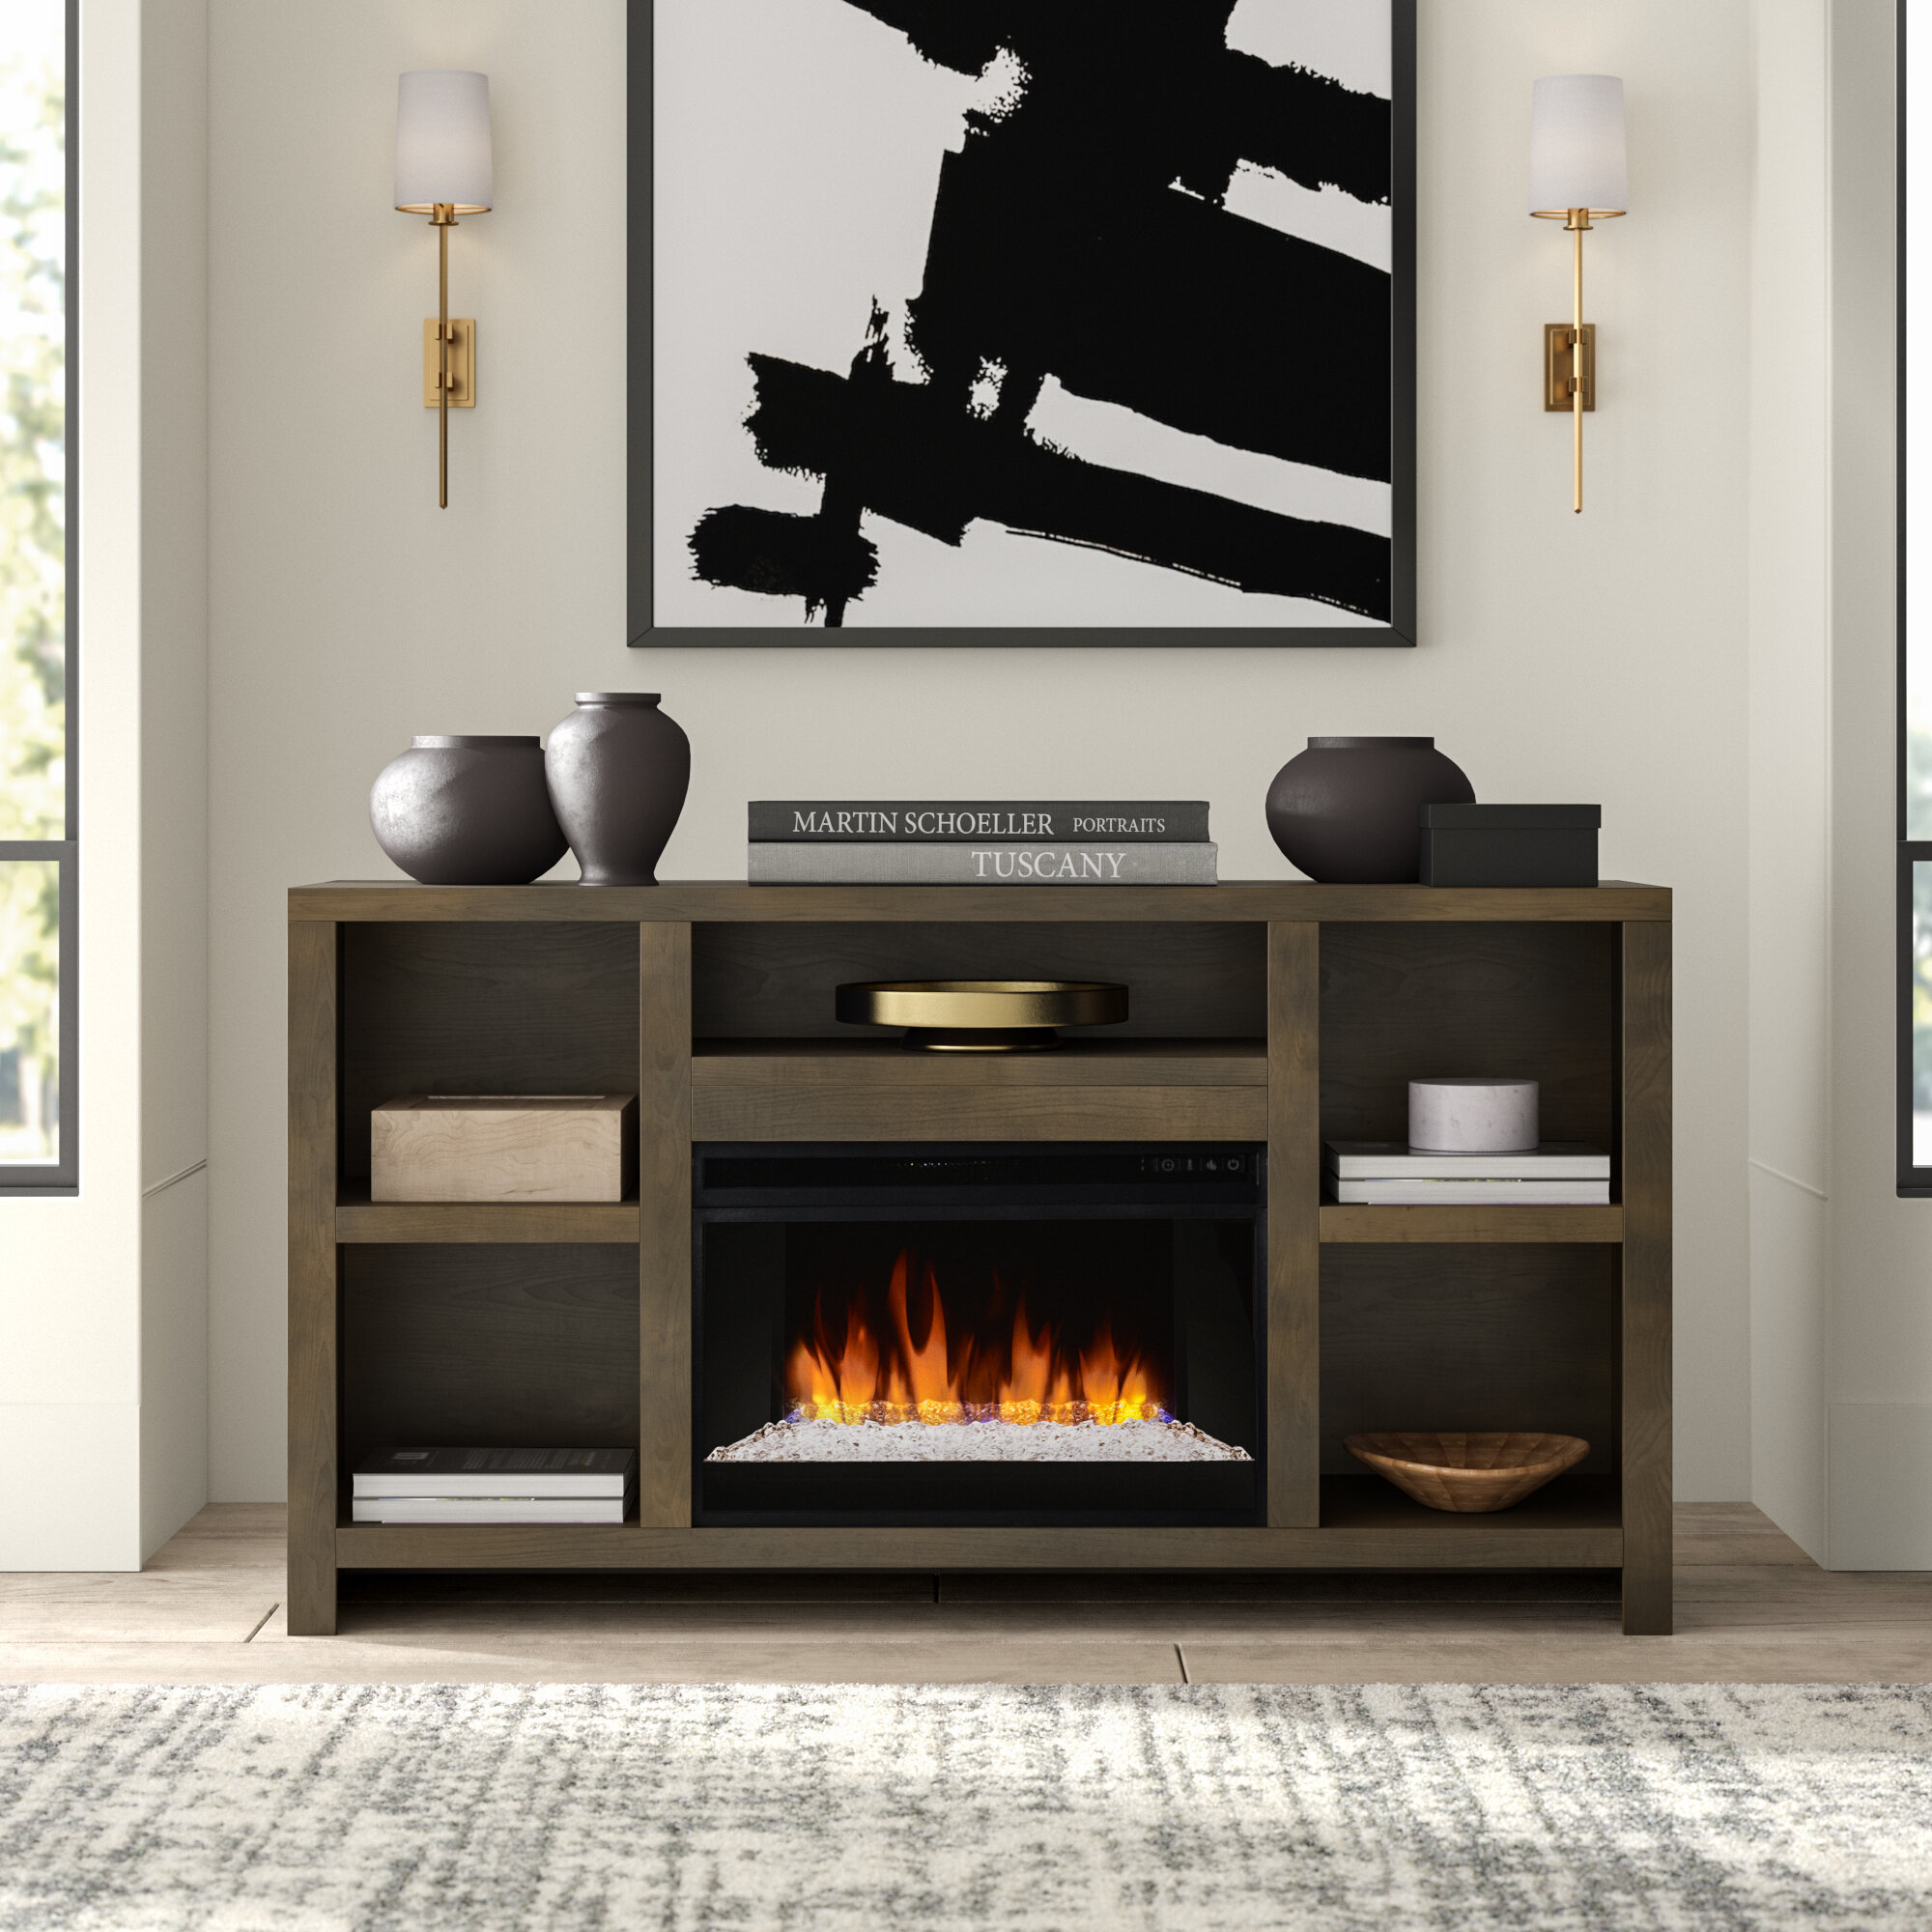 Greyleigh Columbia Tv Stand For Tvs Up To 75 With Electric Fireplace Included Reviews Wayfair